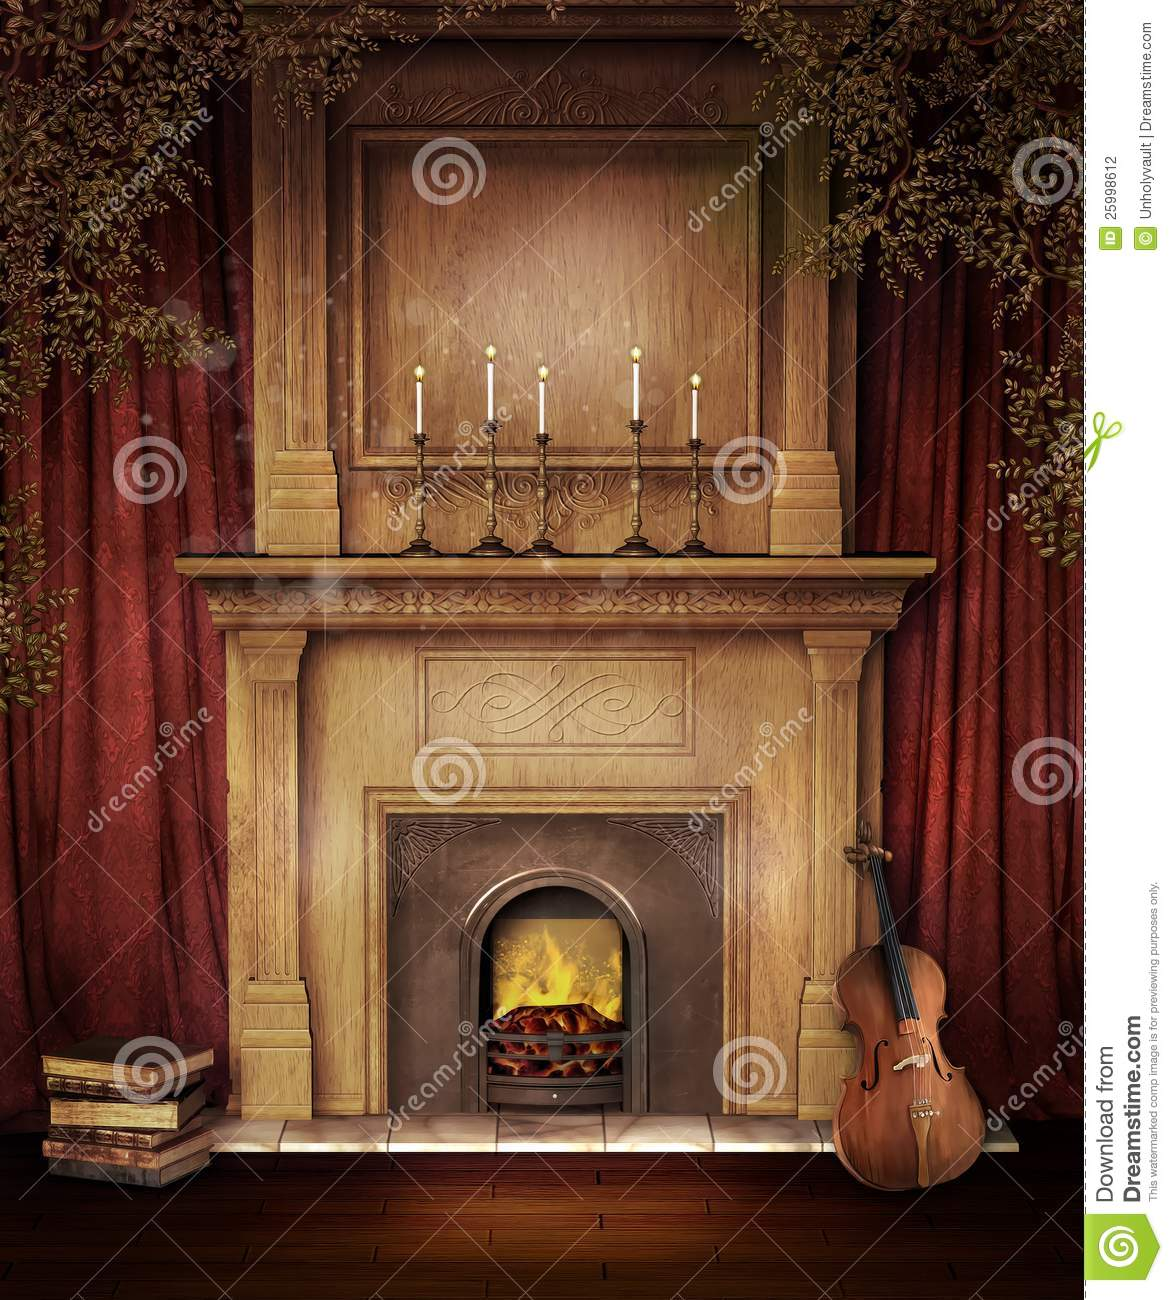 old fireplace with a violin stock photography image. Black Bedroom Furniture Sets. Home Design Ideas